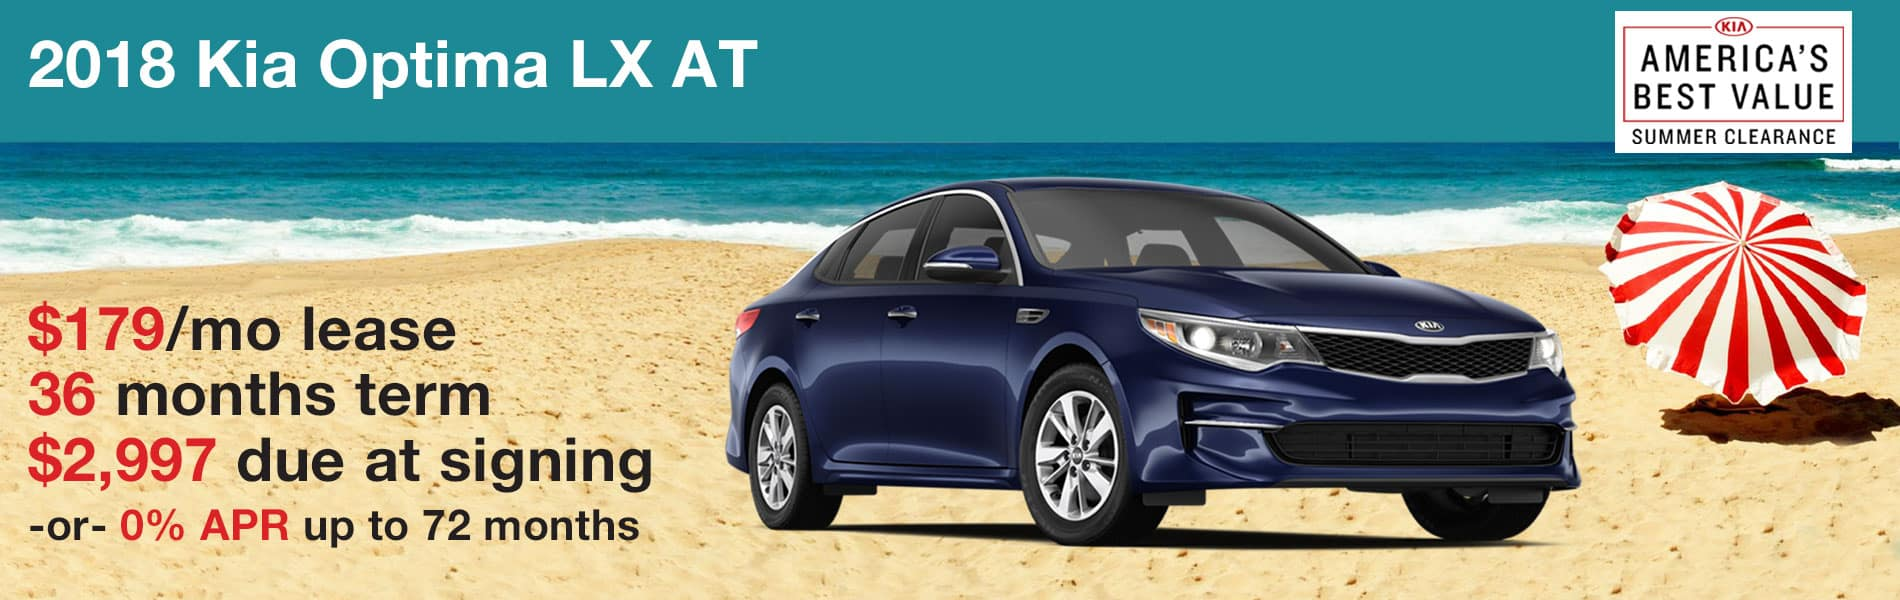 Lease an Optima LX for $179 per month with $2,997 due at signing or 0% APR up to 72 months